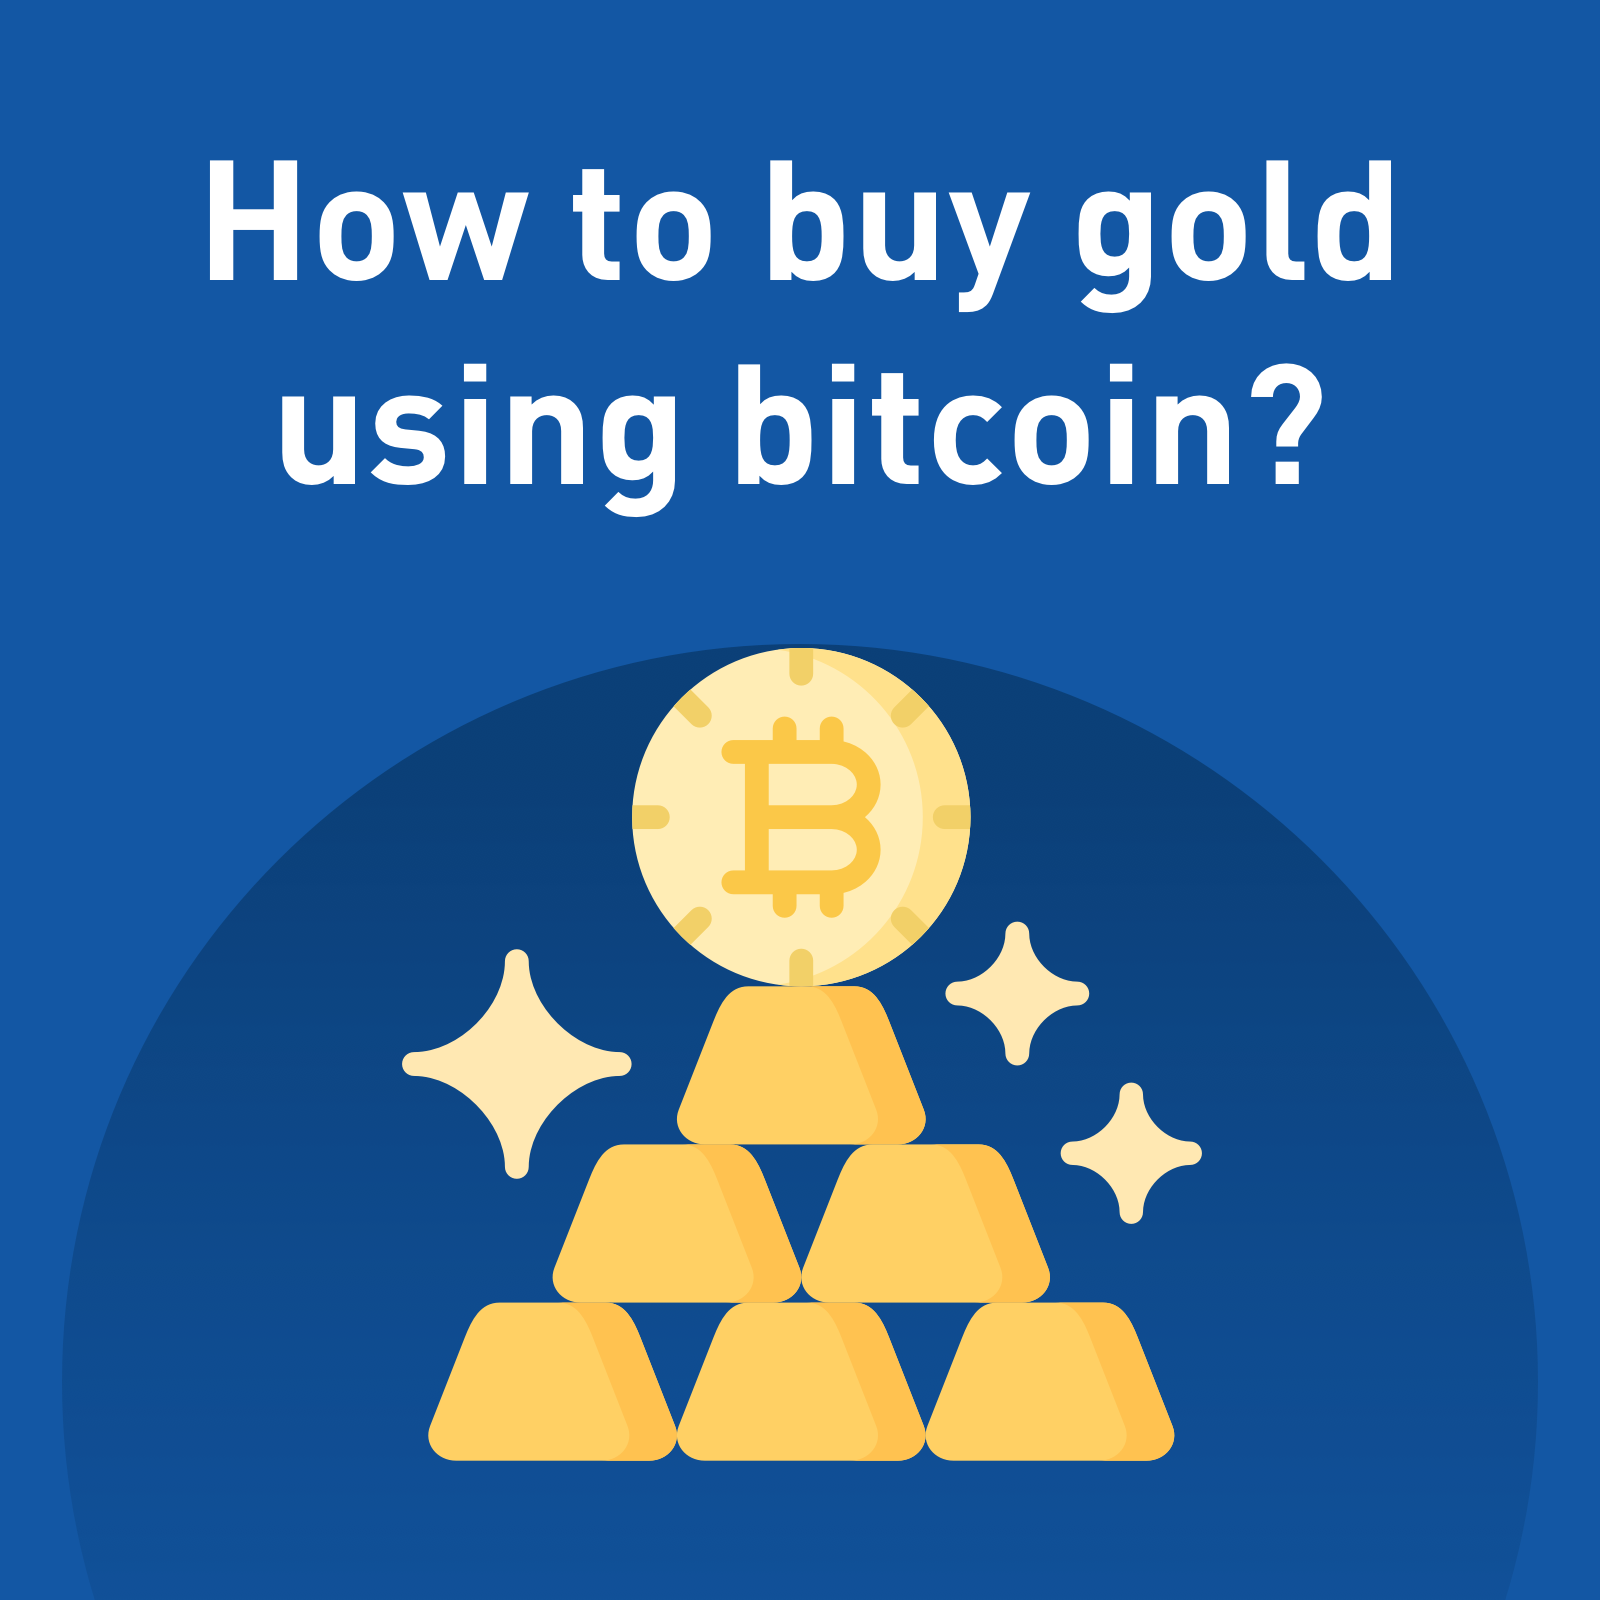 Buy gold with bitcoins